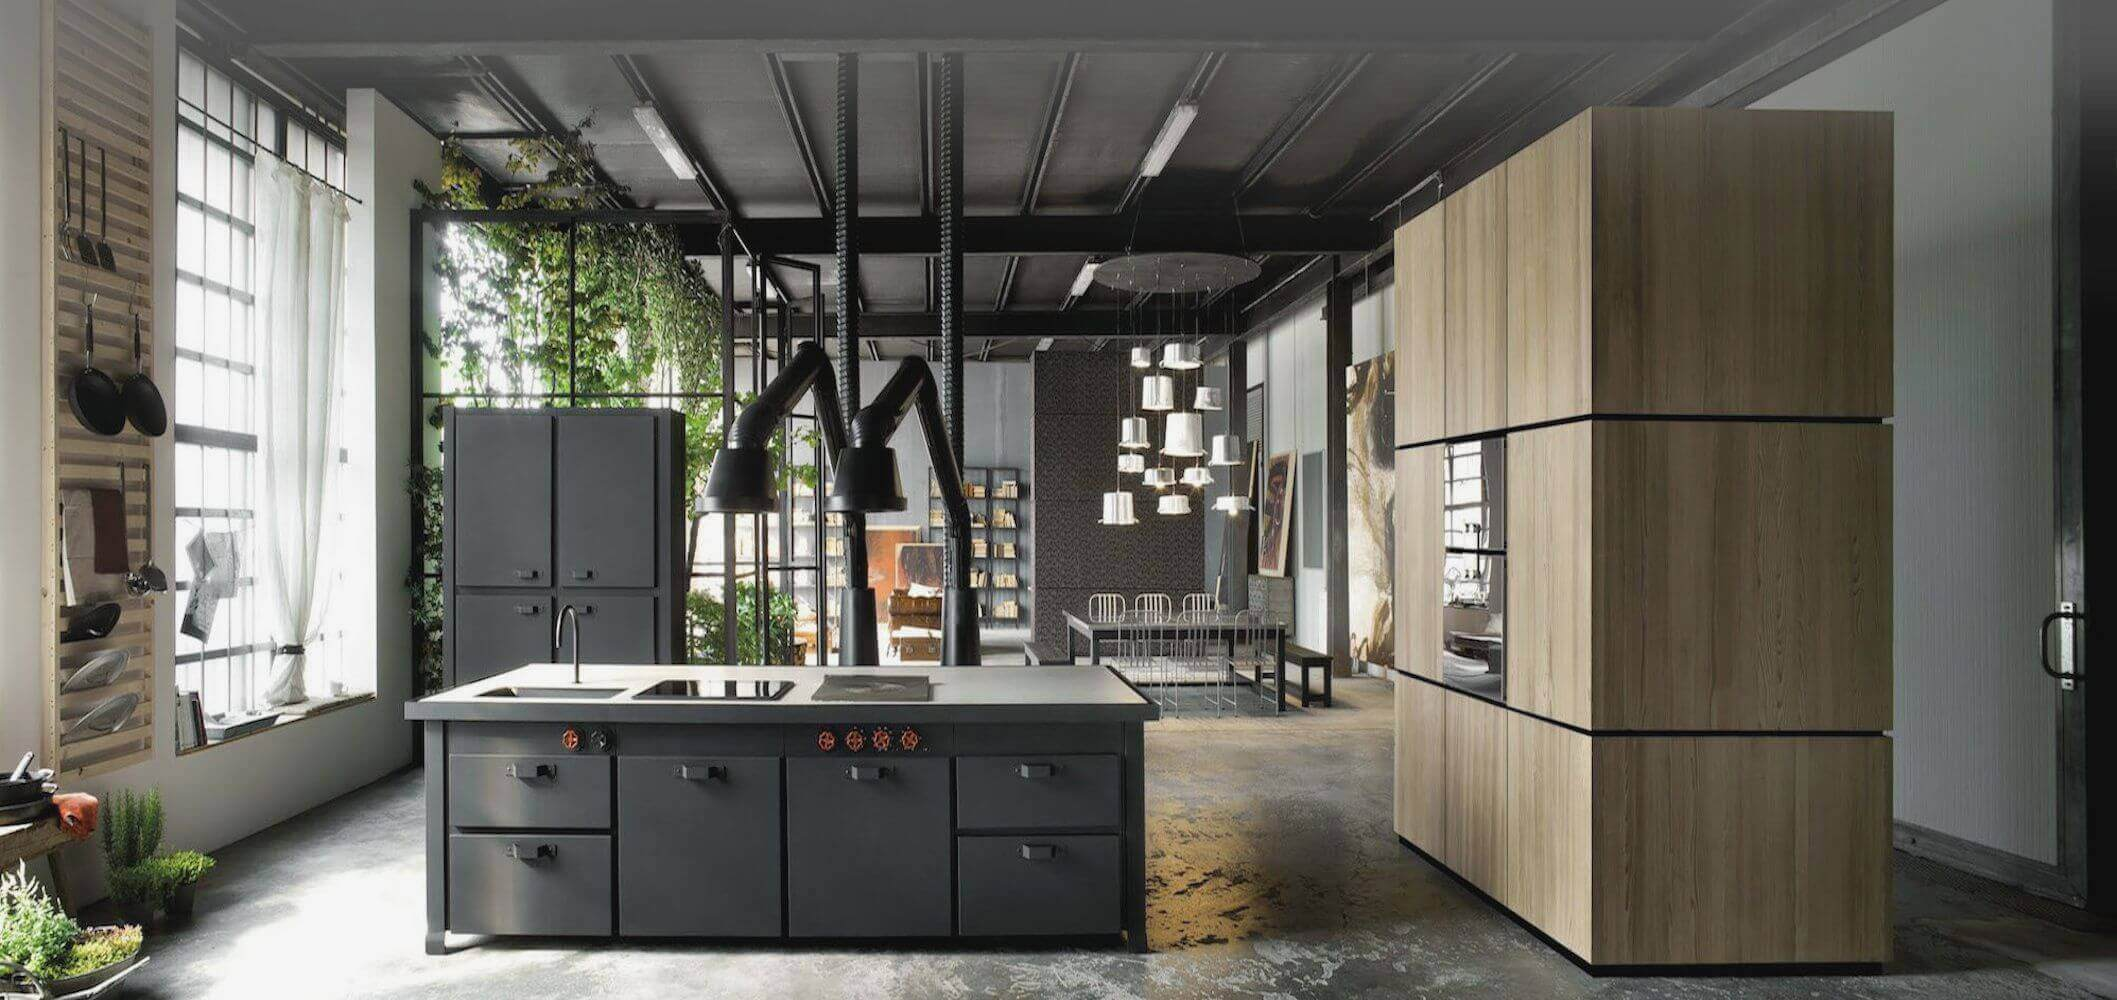 The invested details in this room personalize the grandeur and otherwise create a comfortable kitchen space. Dark wood island with sink adds a natural touch in contrast to the light wood modern industrial kitchen cabinets